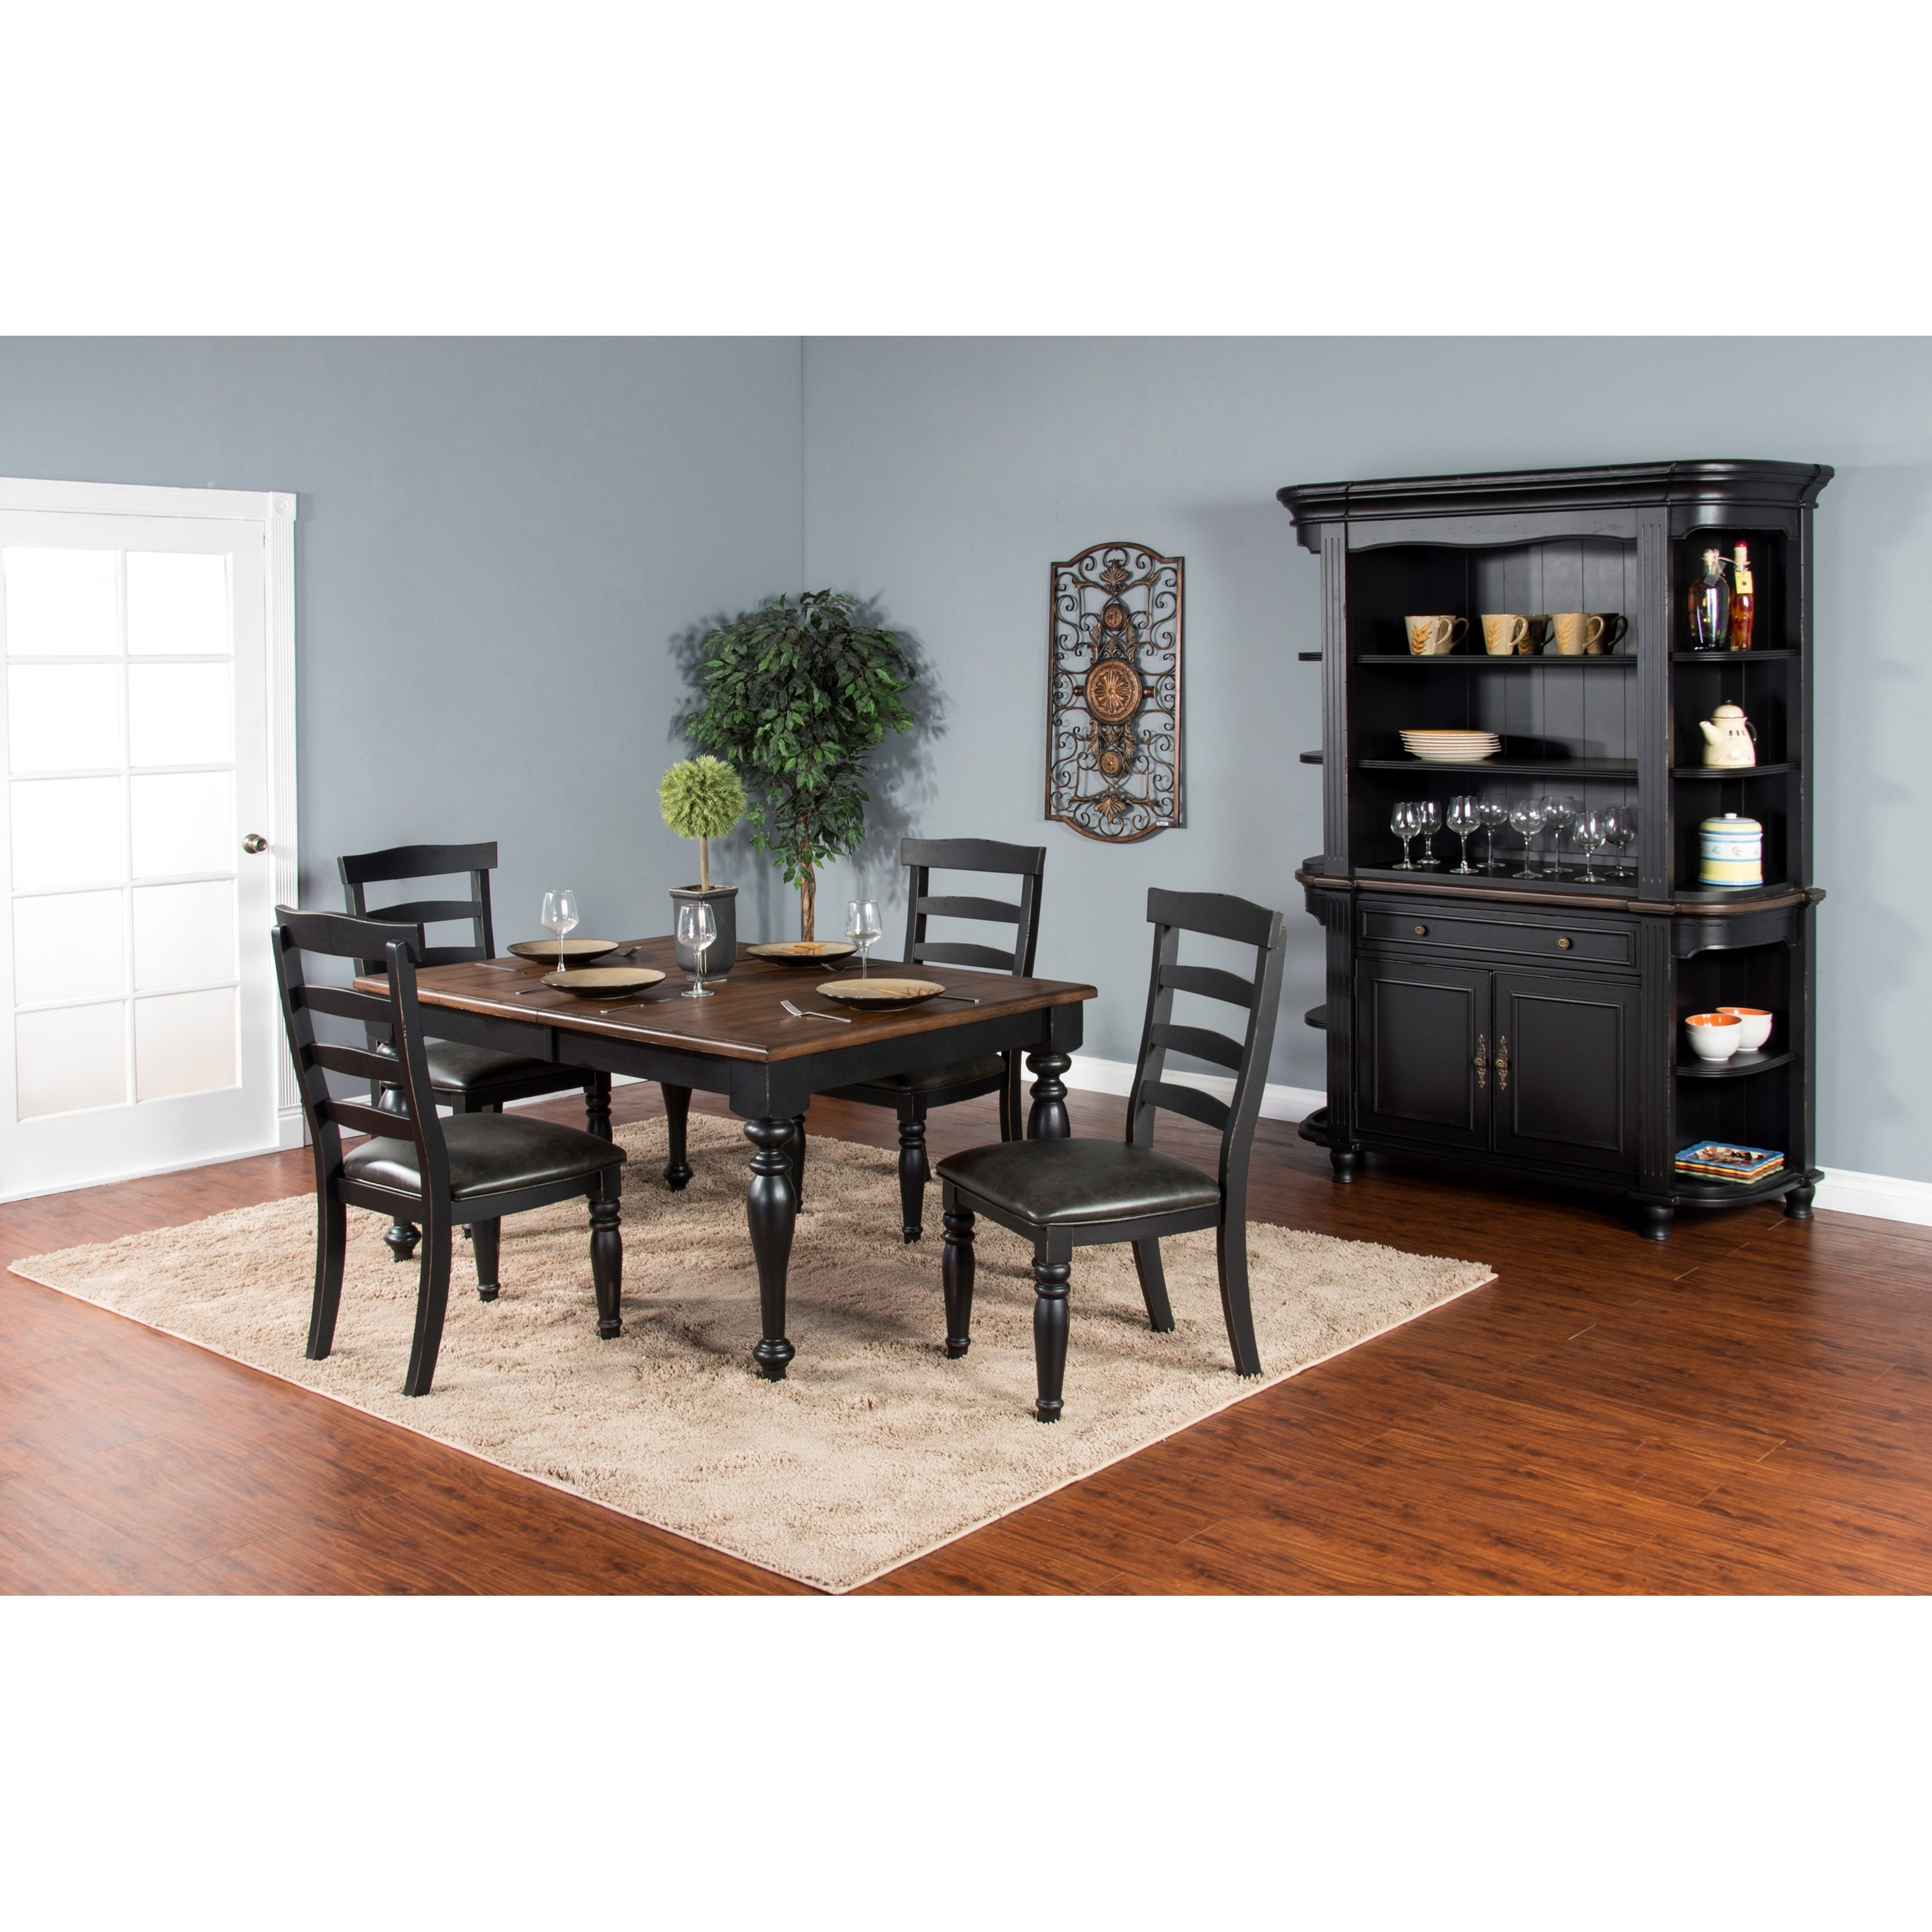 sunny designs bourbon trail casual dining room group. Black Bedroom Furniture Sets. Home Design Ideas